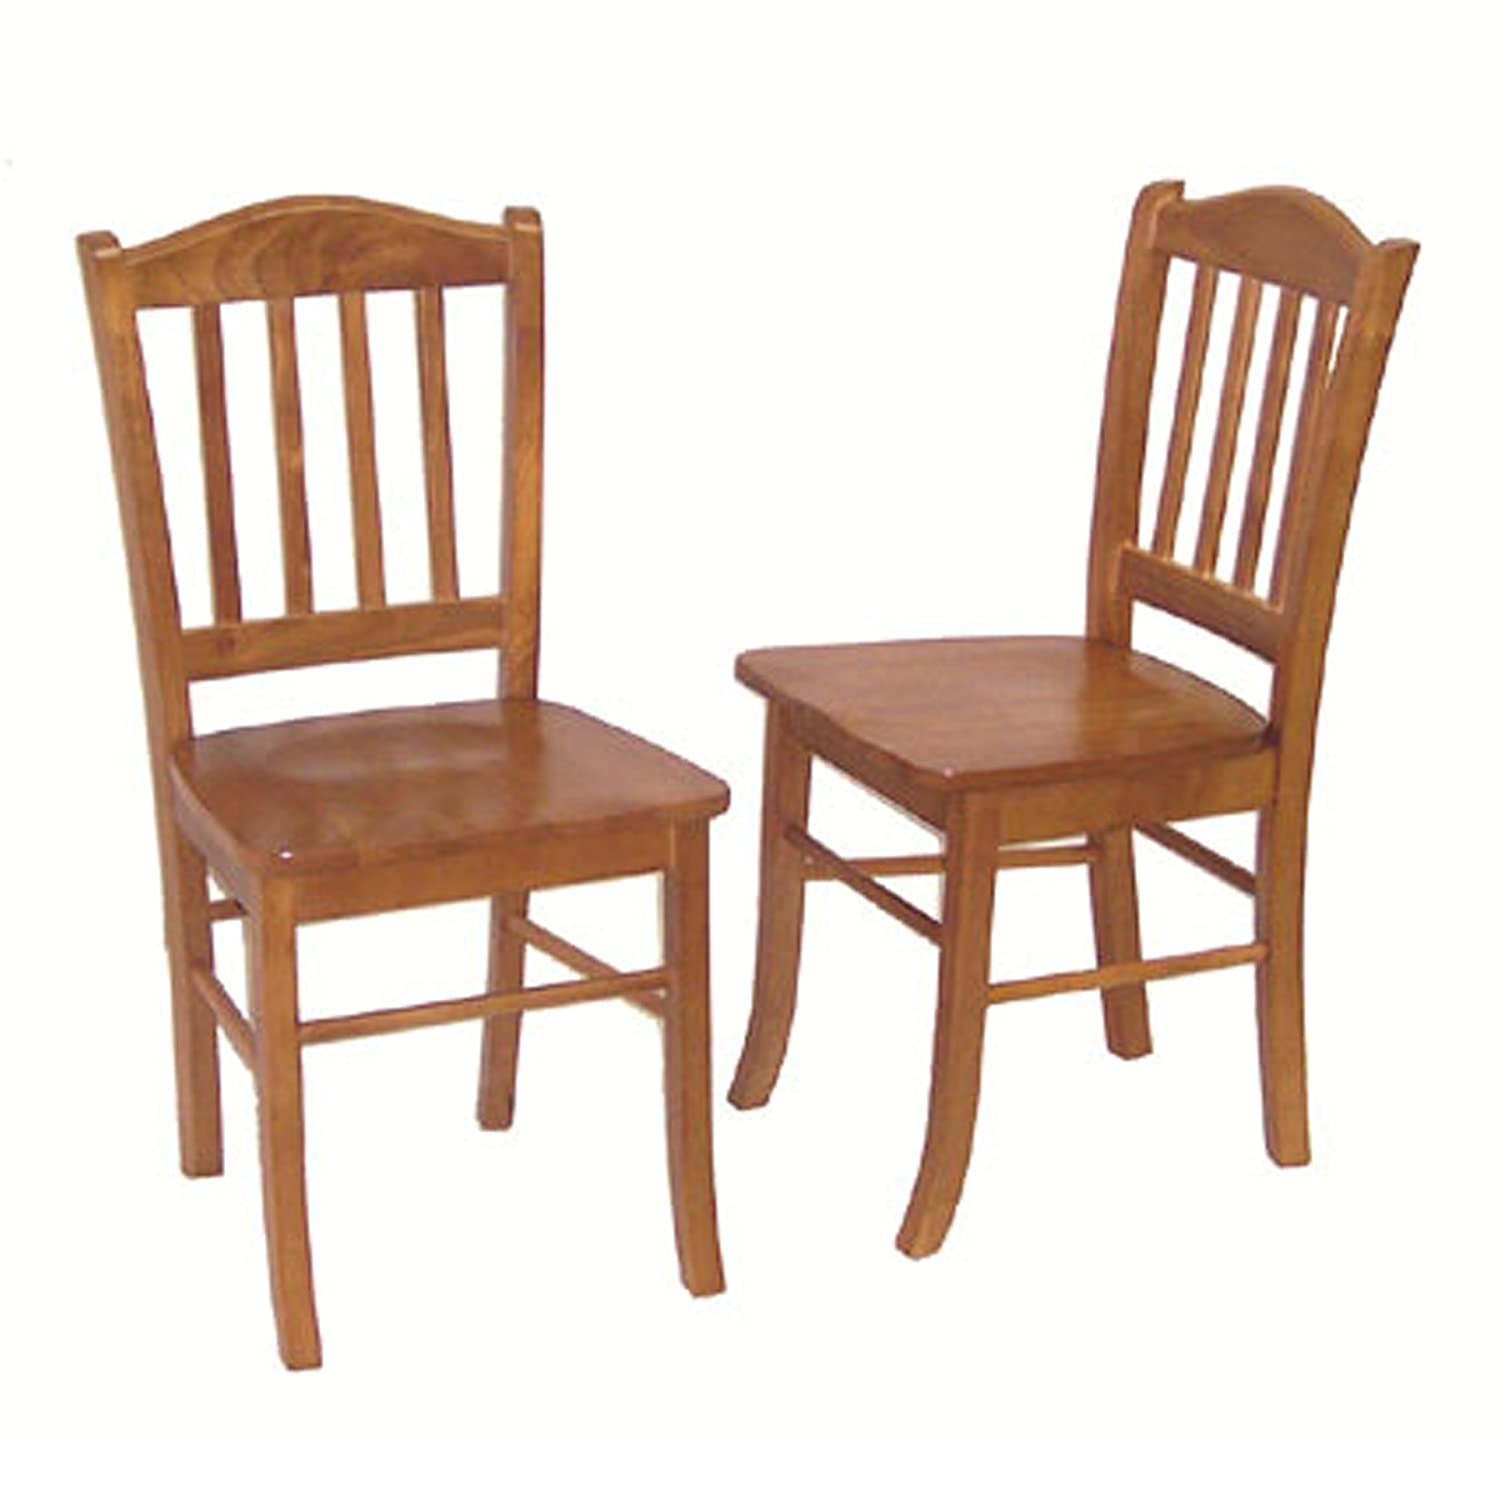 Amazon com boraam 30136 shaker chair oak set of 2 kitchen dining